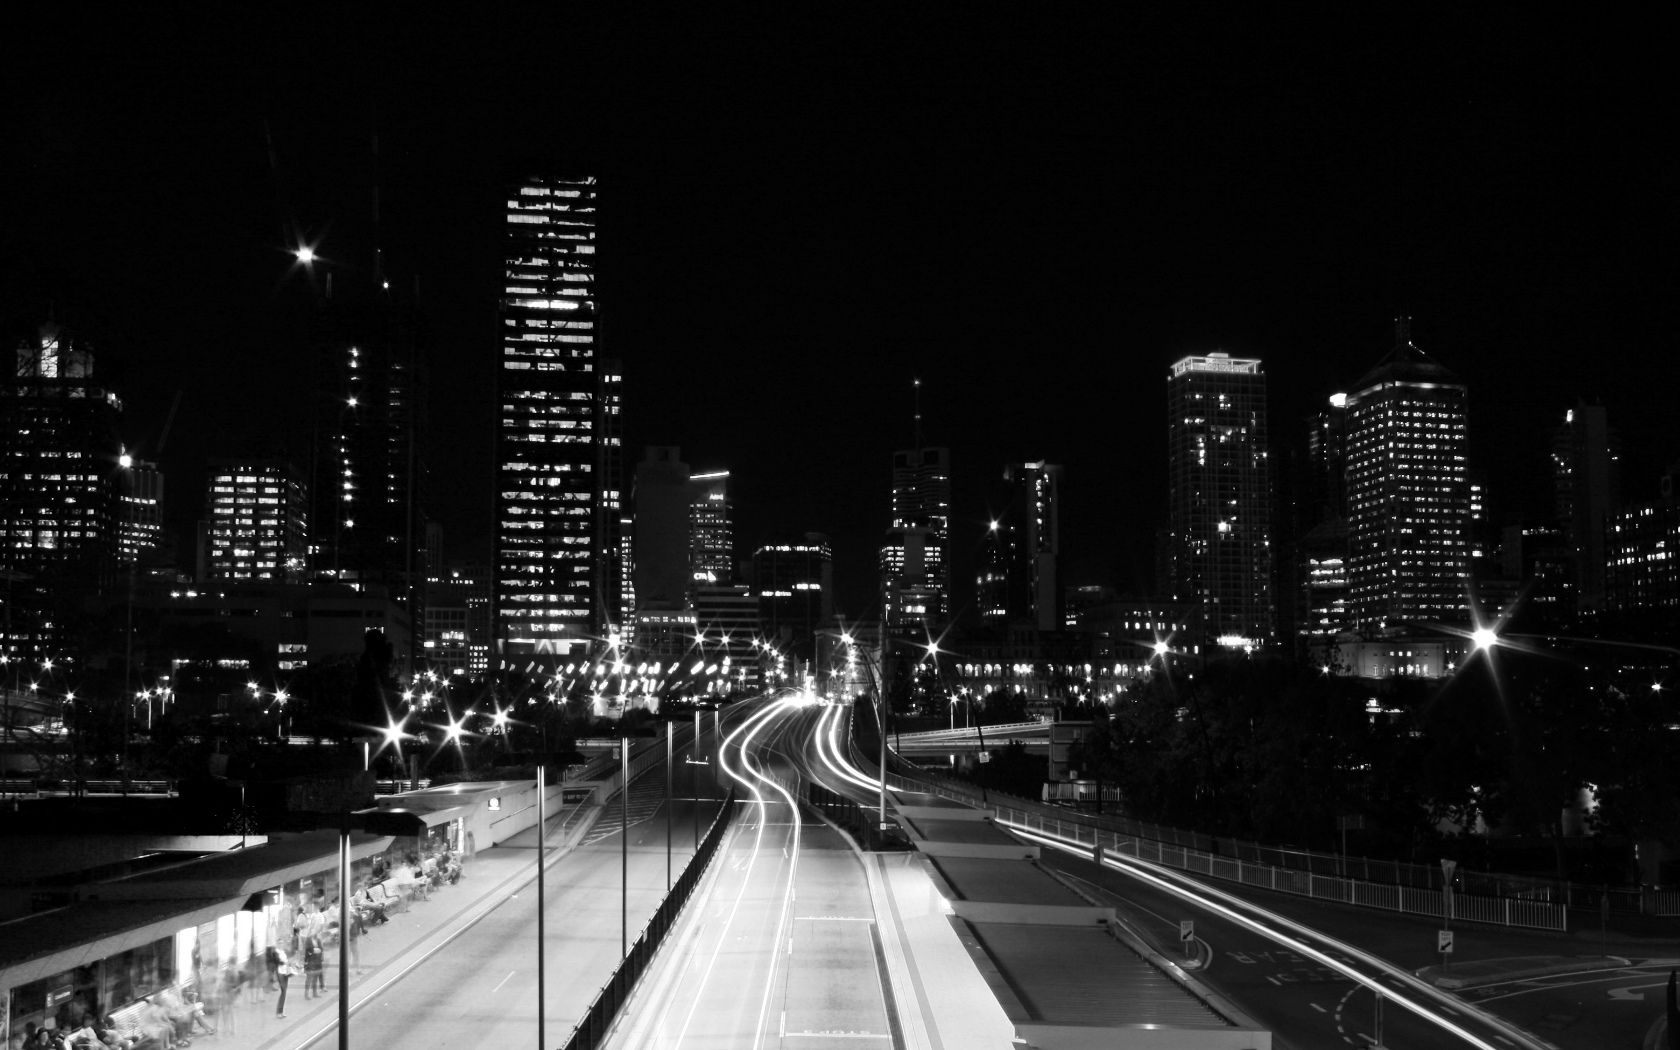 City Wallpapers Wide City Wallpaper Night Pictures Tumblr Backgrounds